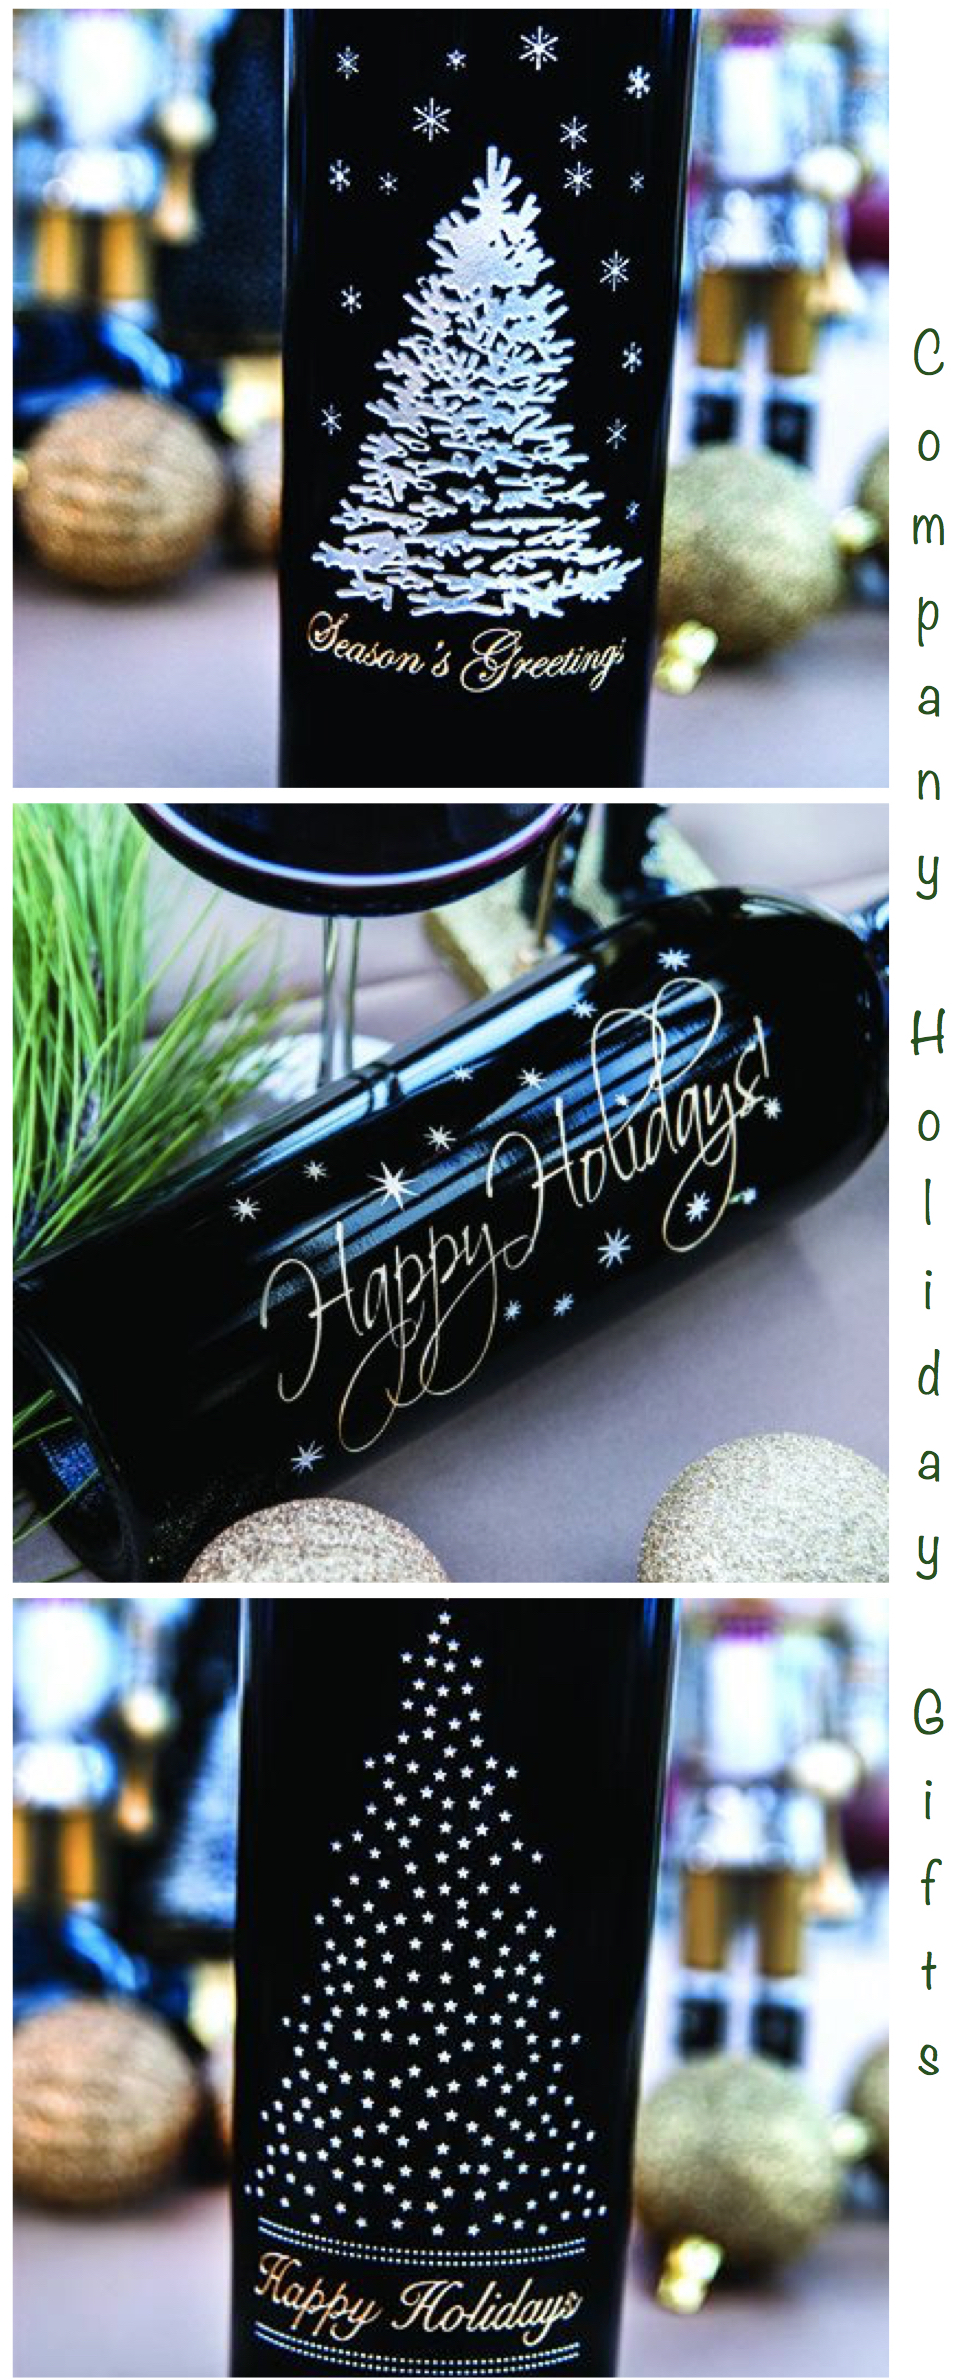 Company Holiday Gifts Etched Wine Bottles